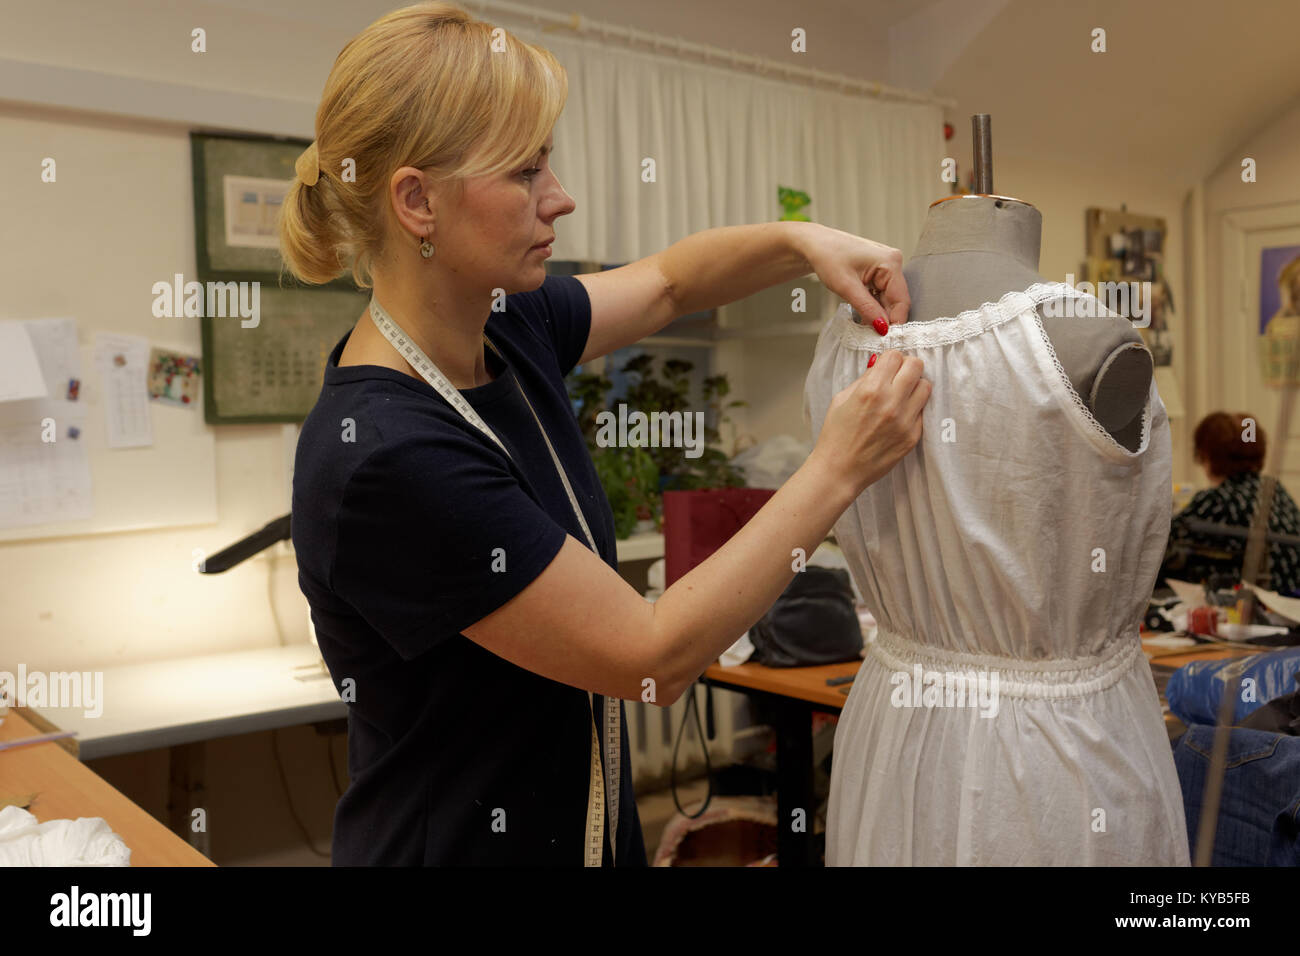 Apparel cutter at work in the Alexandrinsky theatre, St. Petersburg, Russia Stock Photo